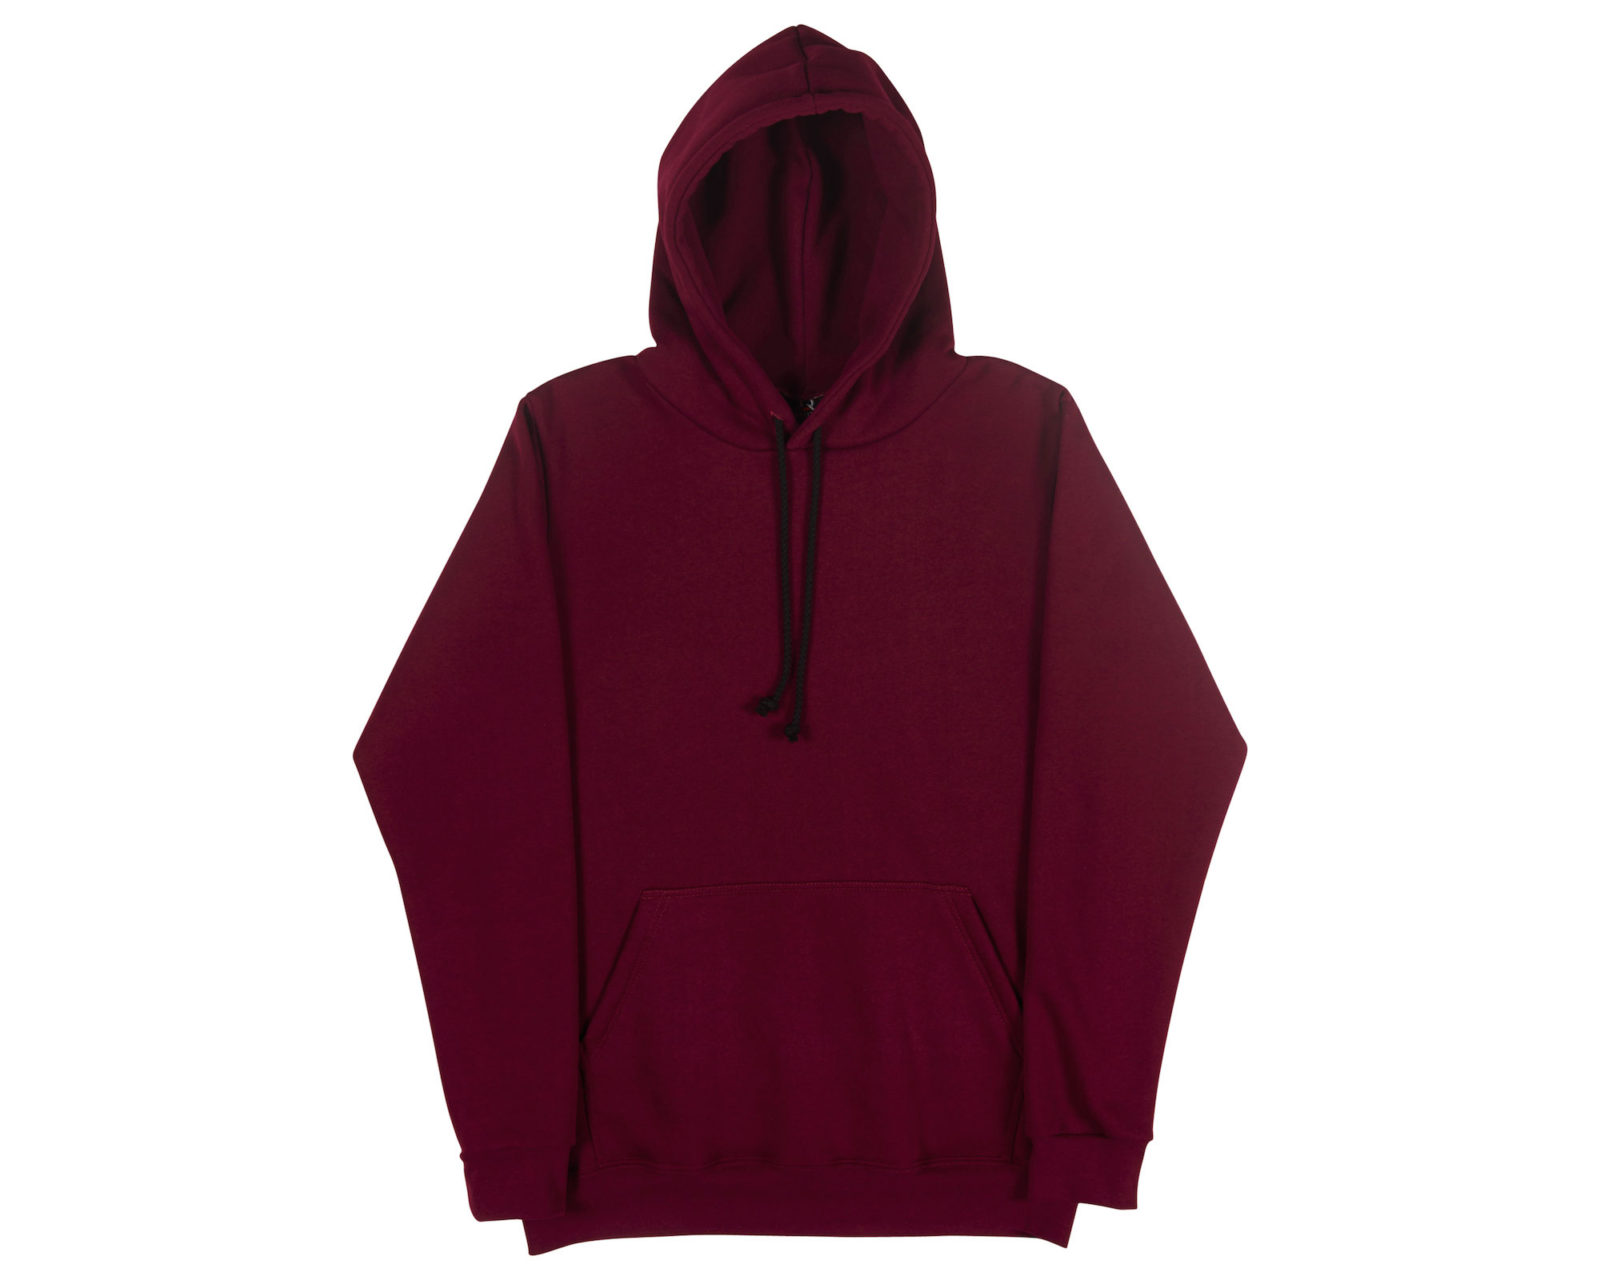 Mens Hoodies products We have a great range of casual wear, and nothing is better to give you the casual look more than our great range of mens hoodies.